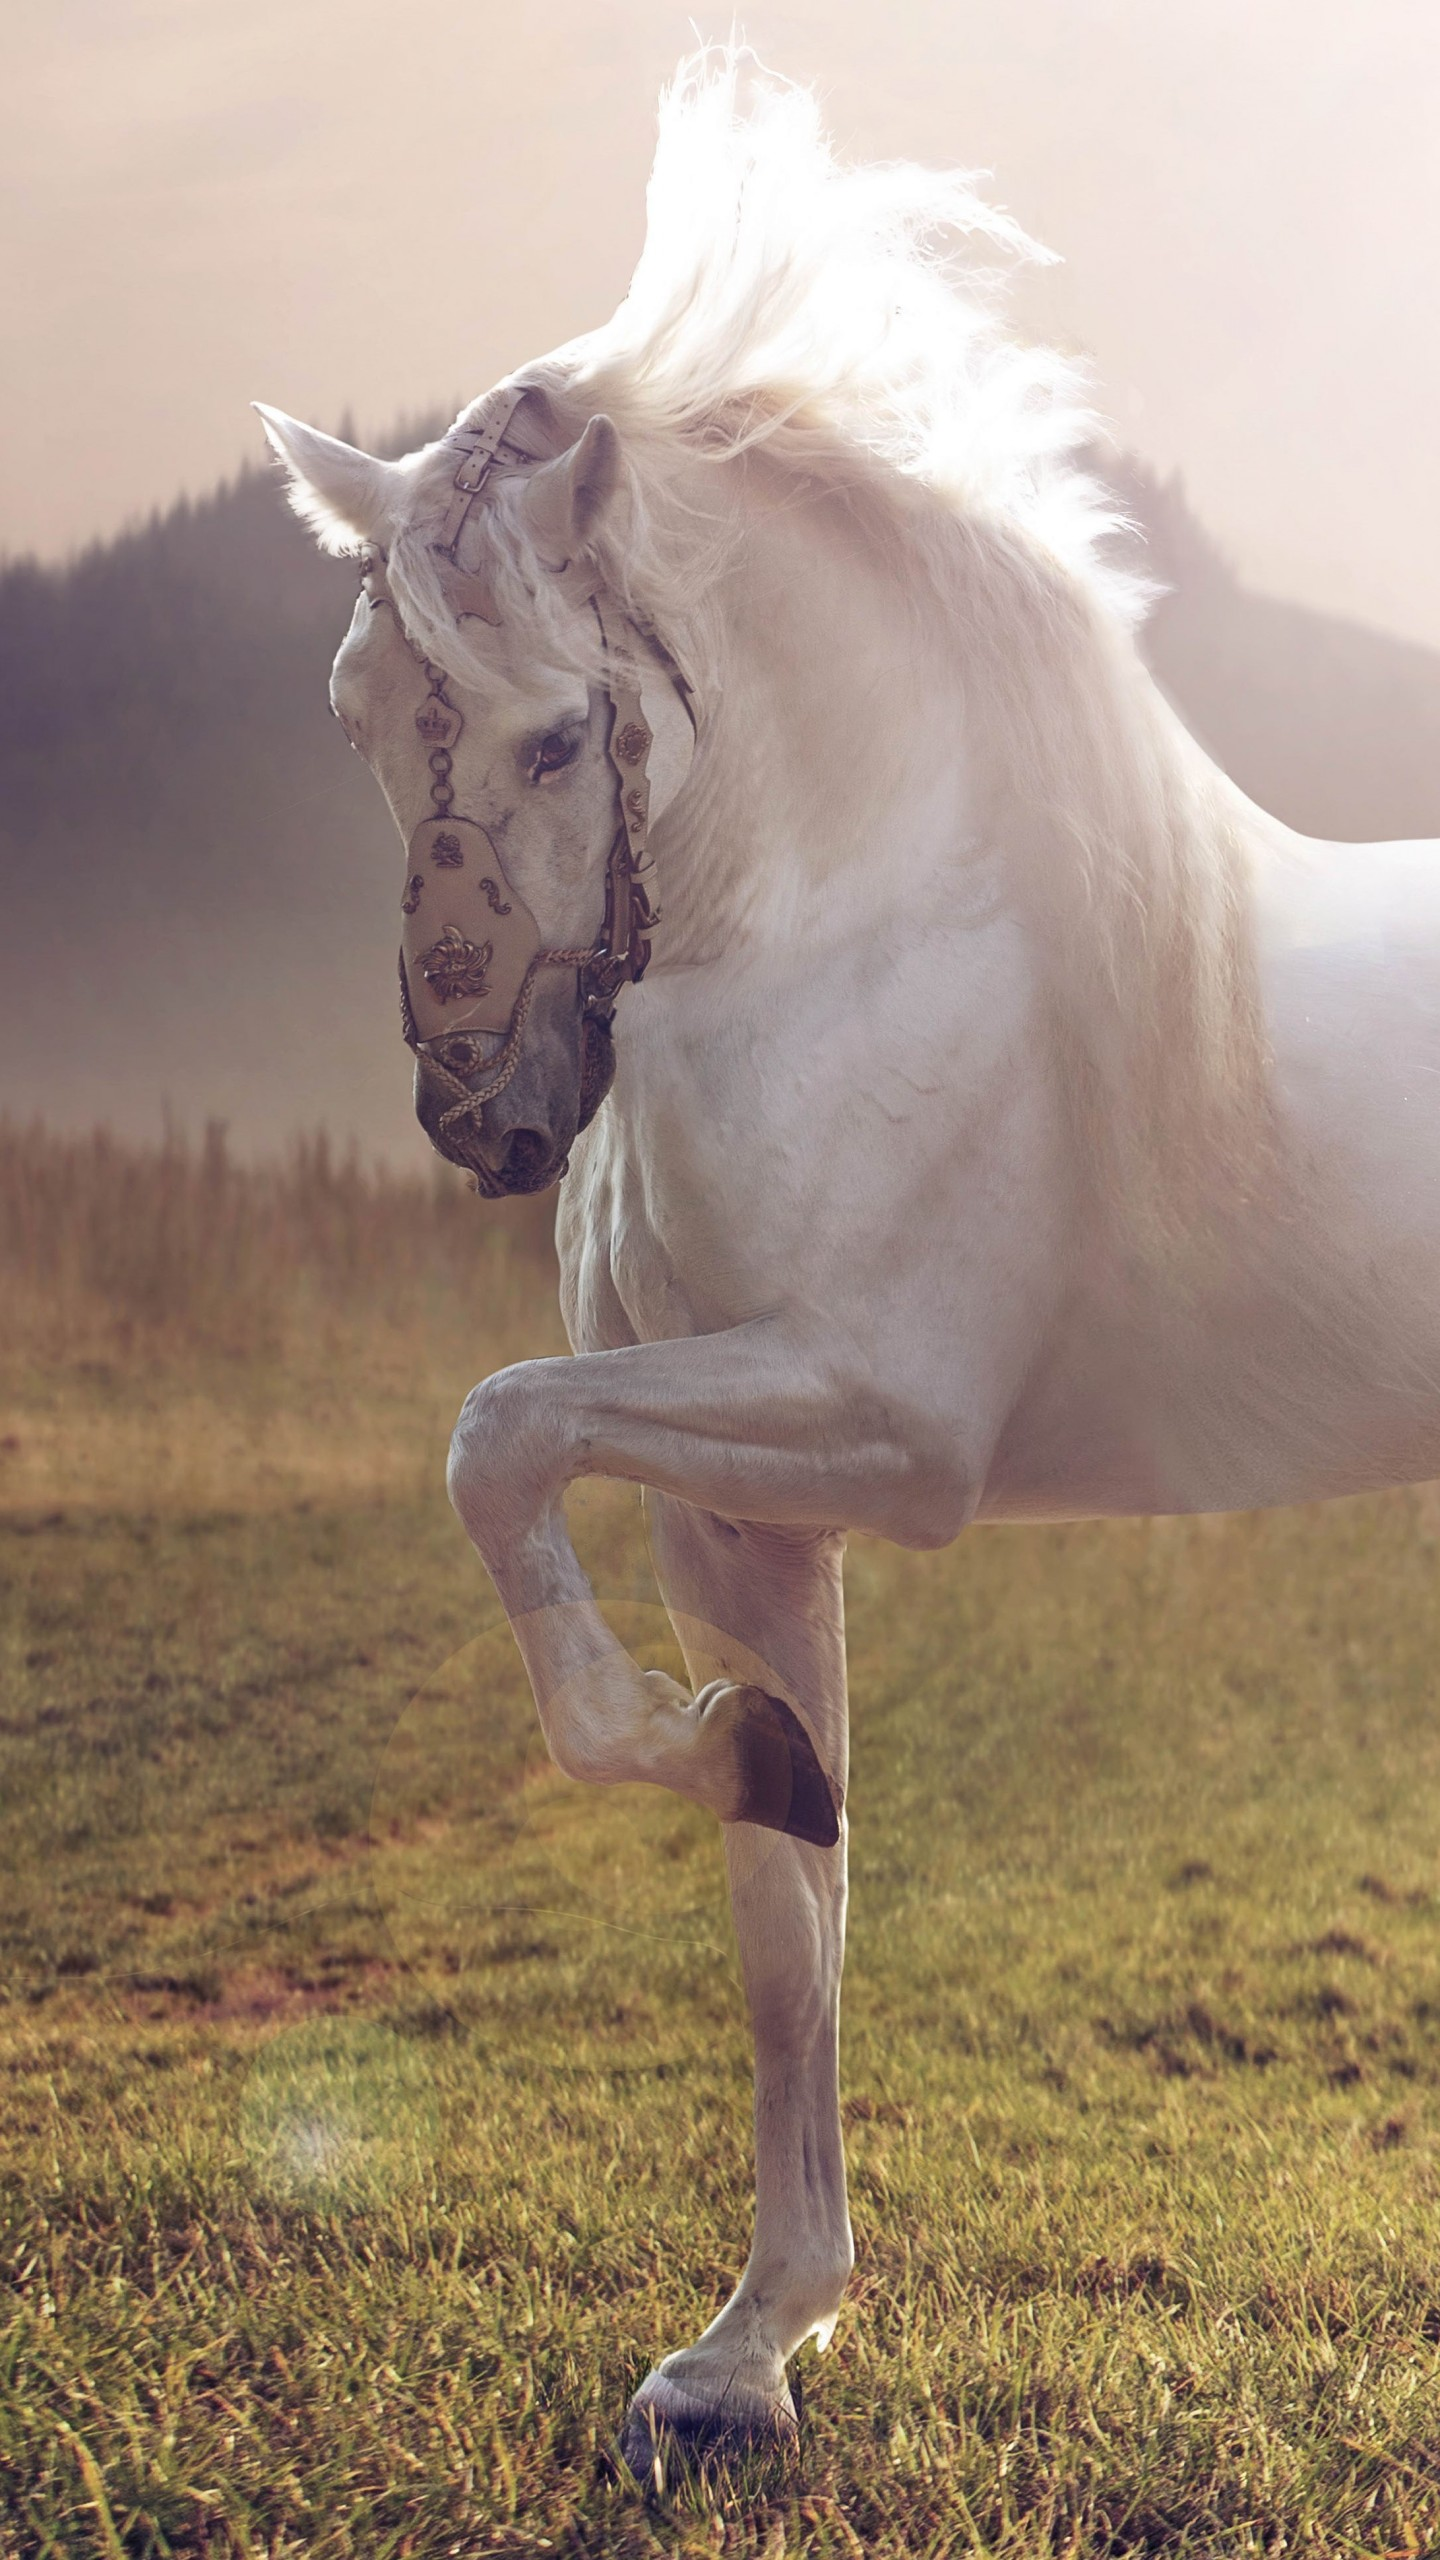 Wallpaper Horse, cute animals, sunset, Animals #4538